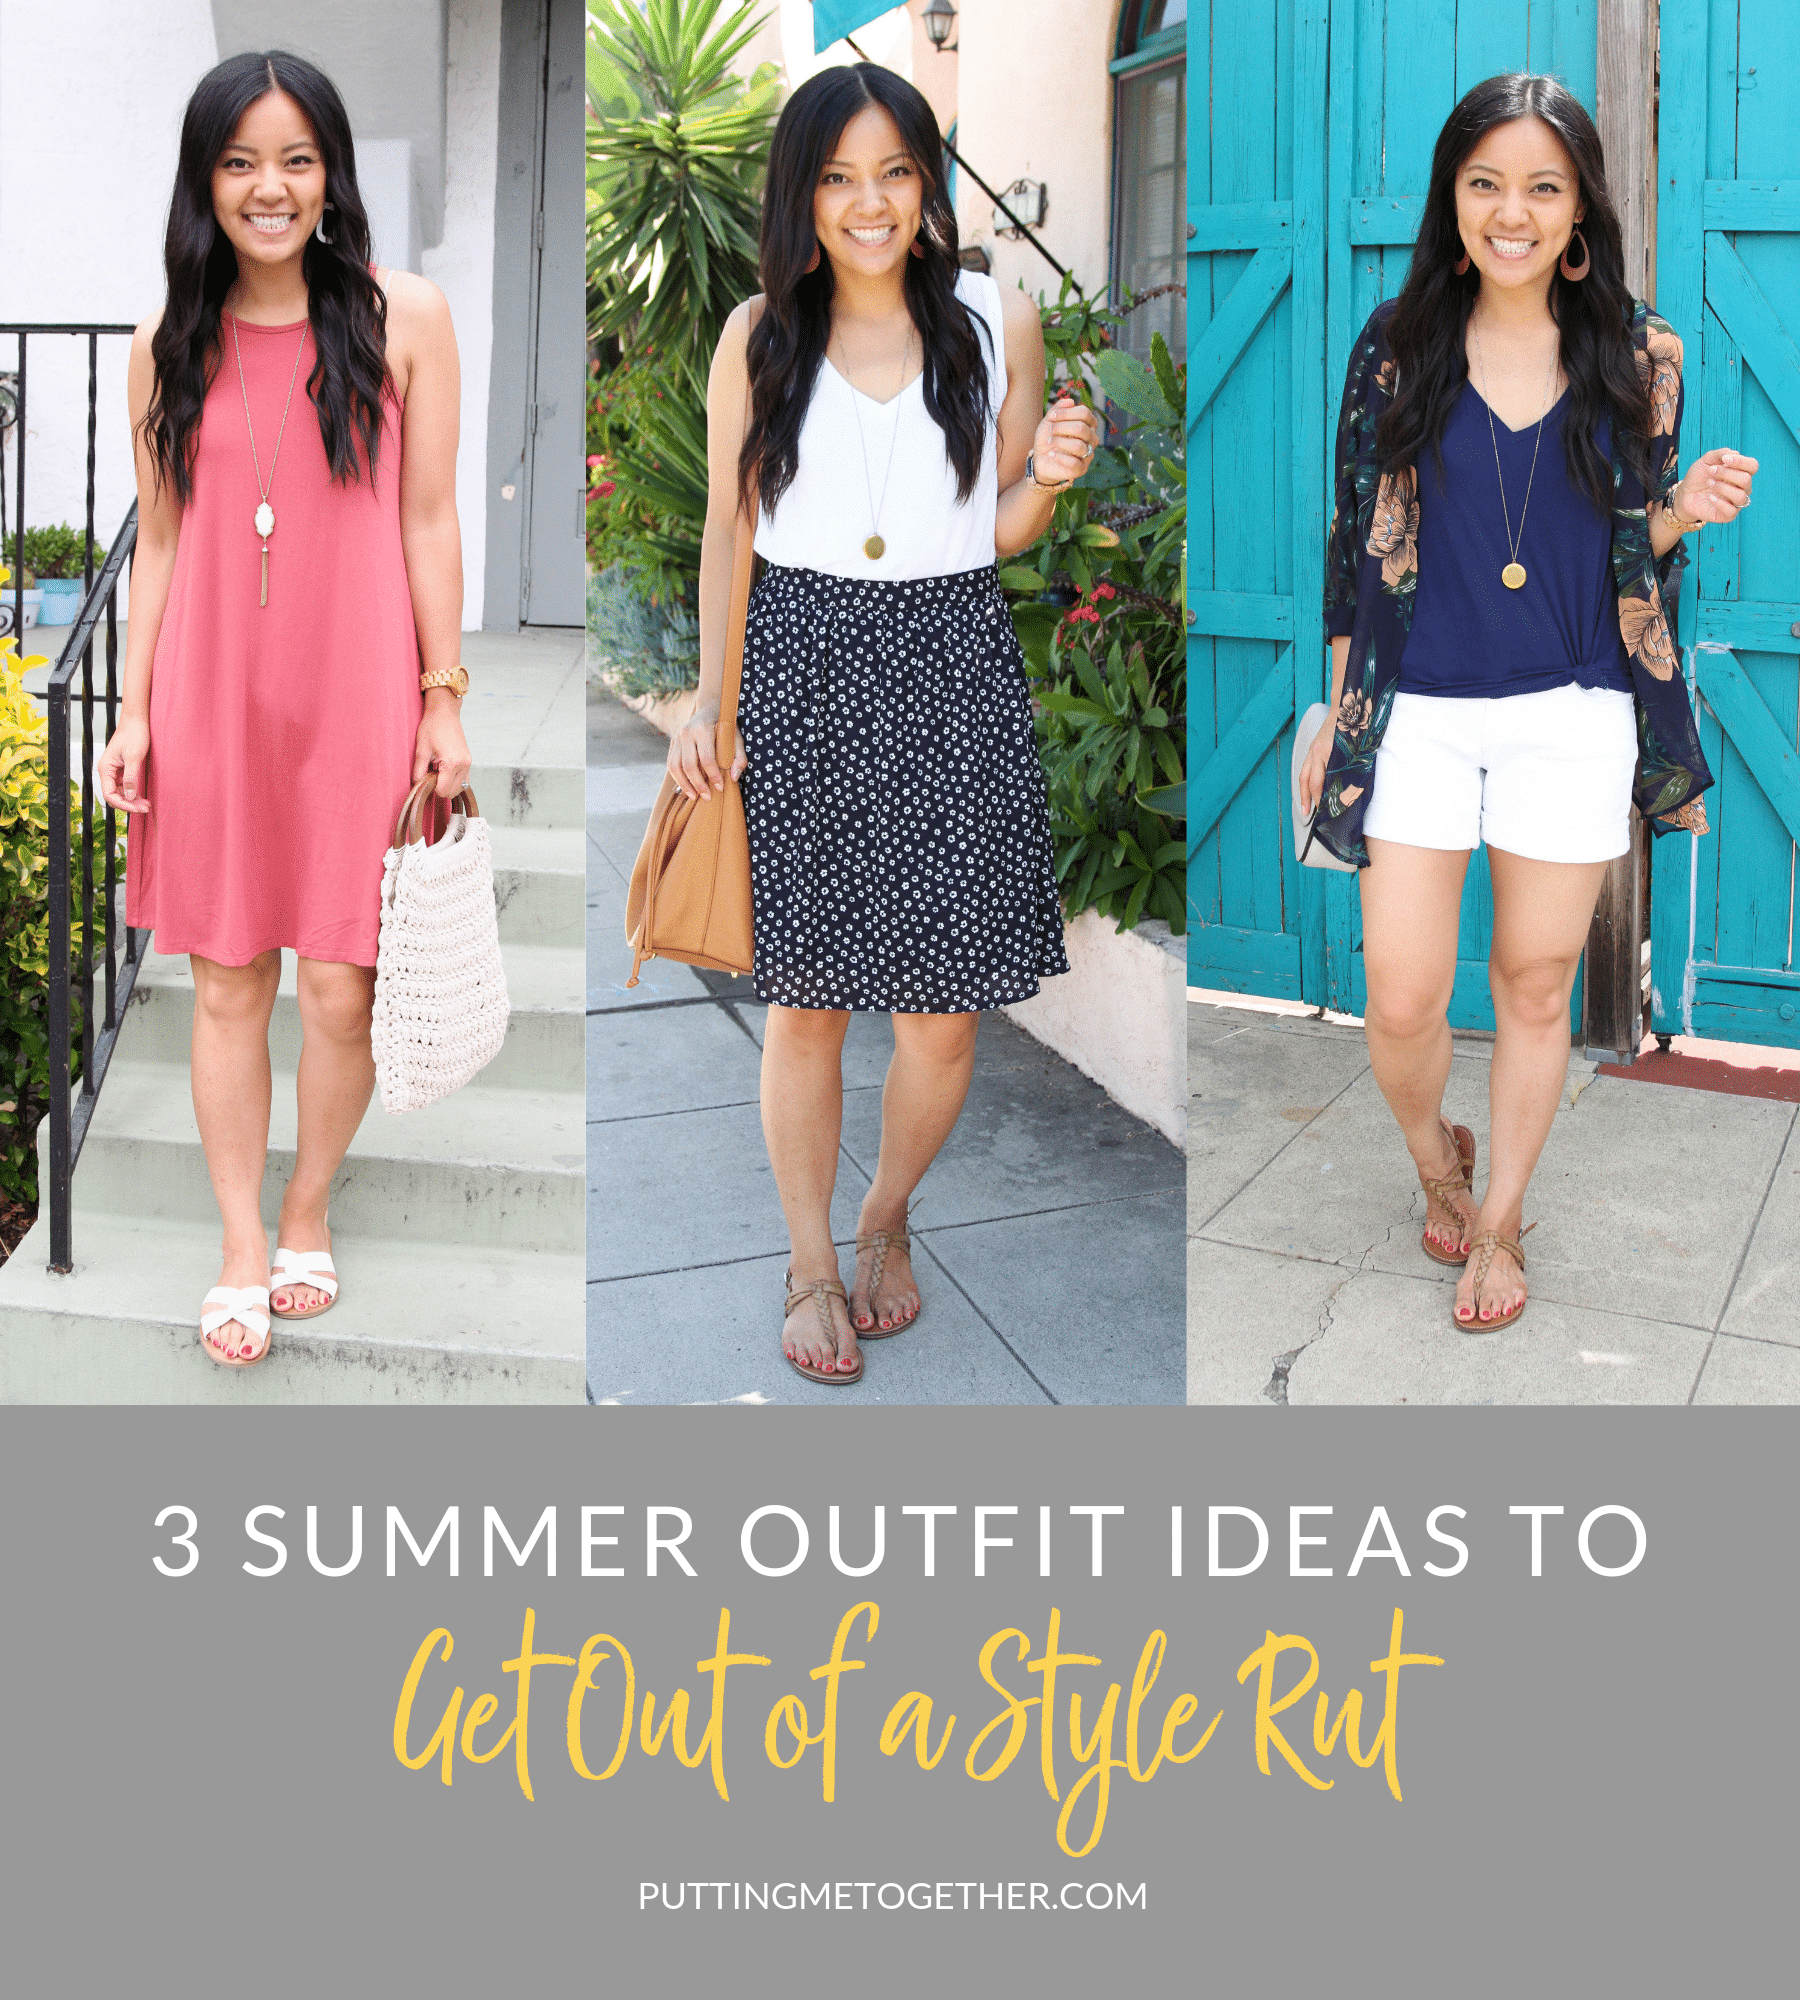 3 Summer Outfits to Get out of a Style Rut